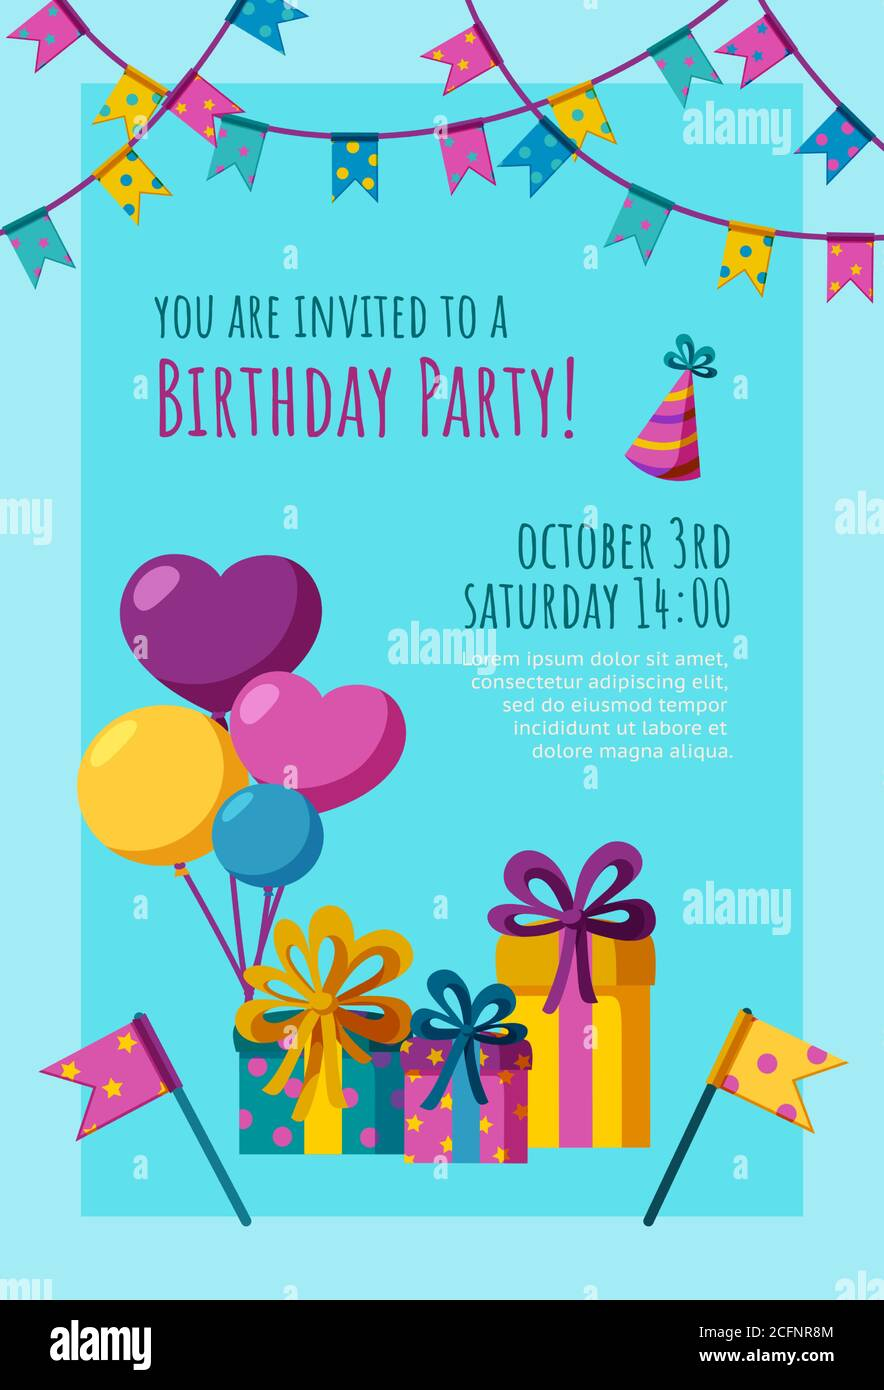 https www alamy com birthday invitation card ready made invitation design with presents balloons and flags colorful vector illustration in flat style image371116836 html